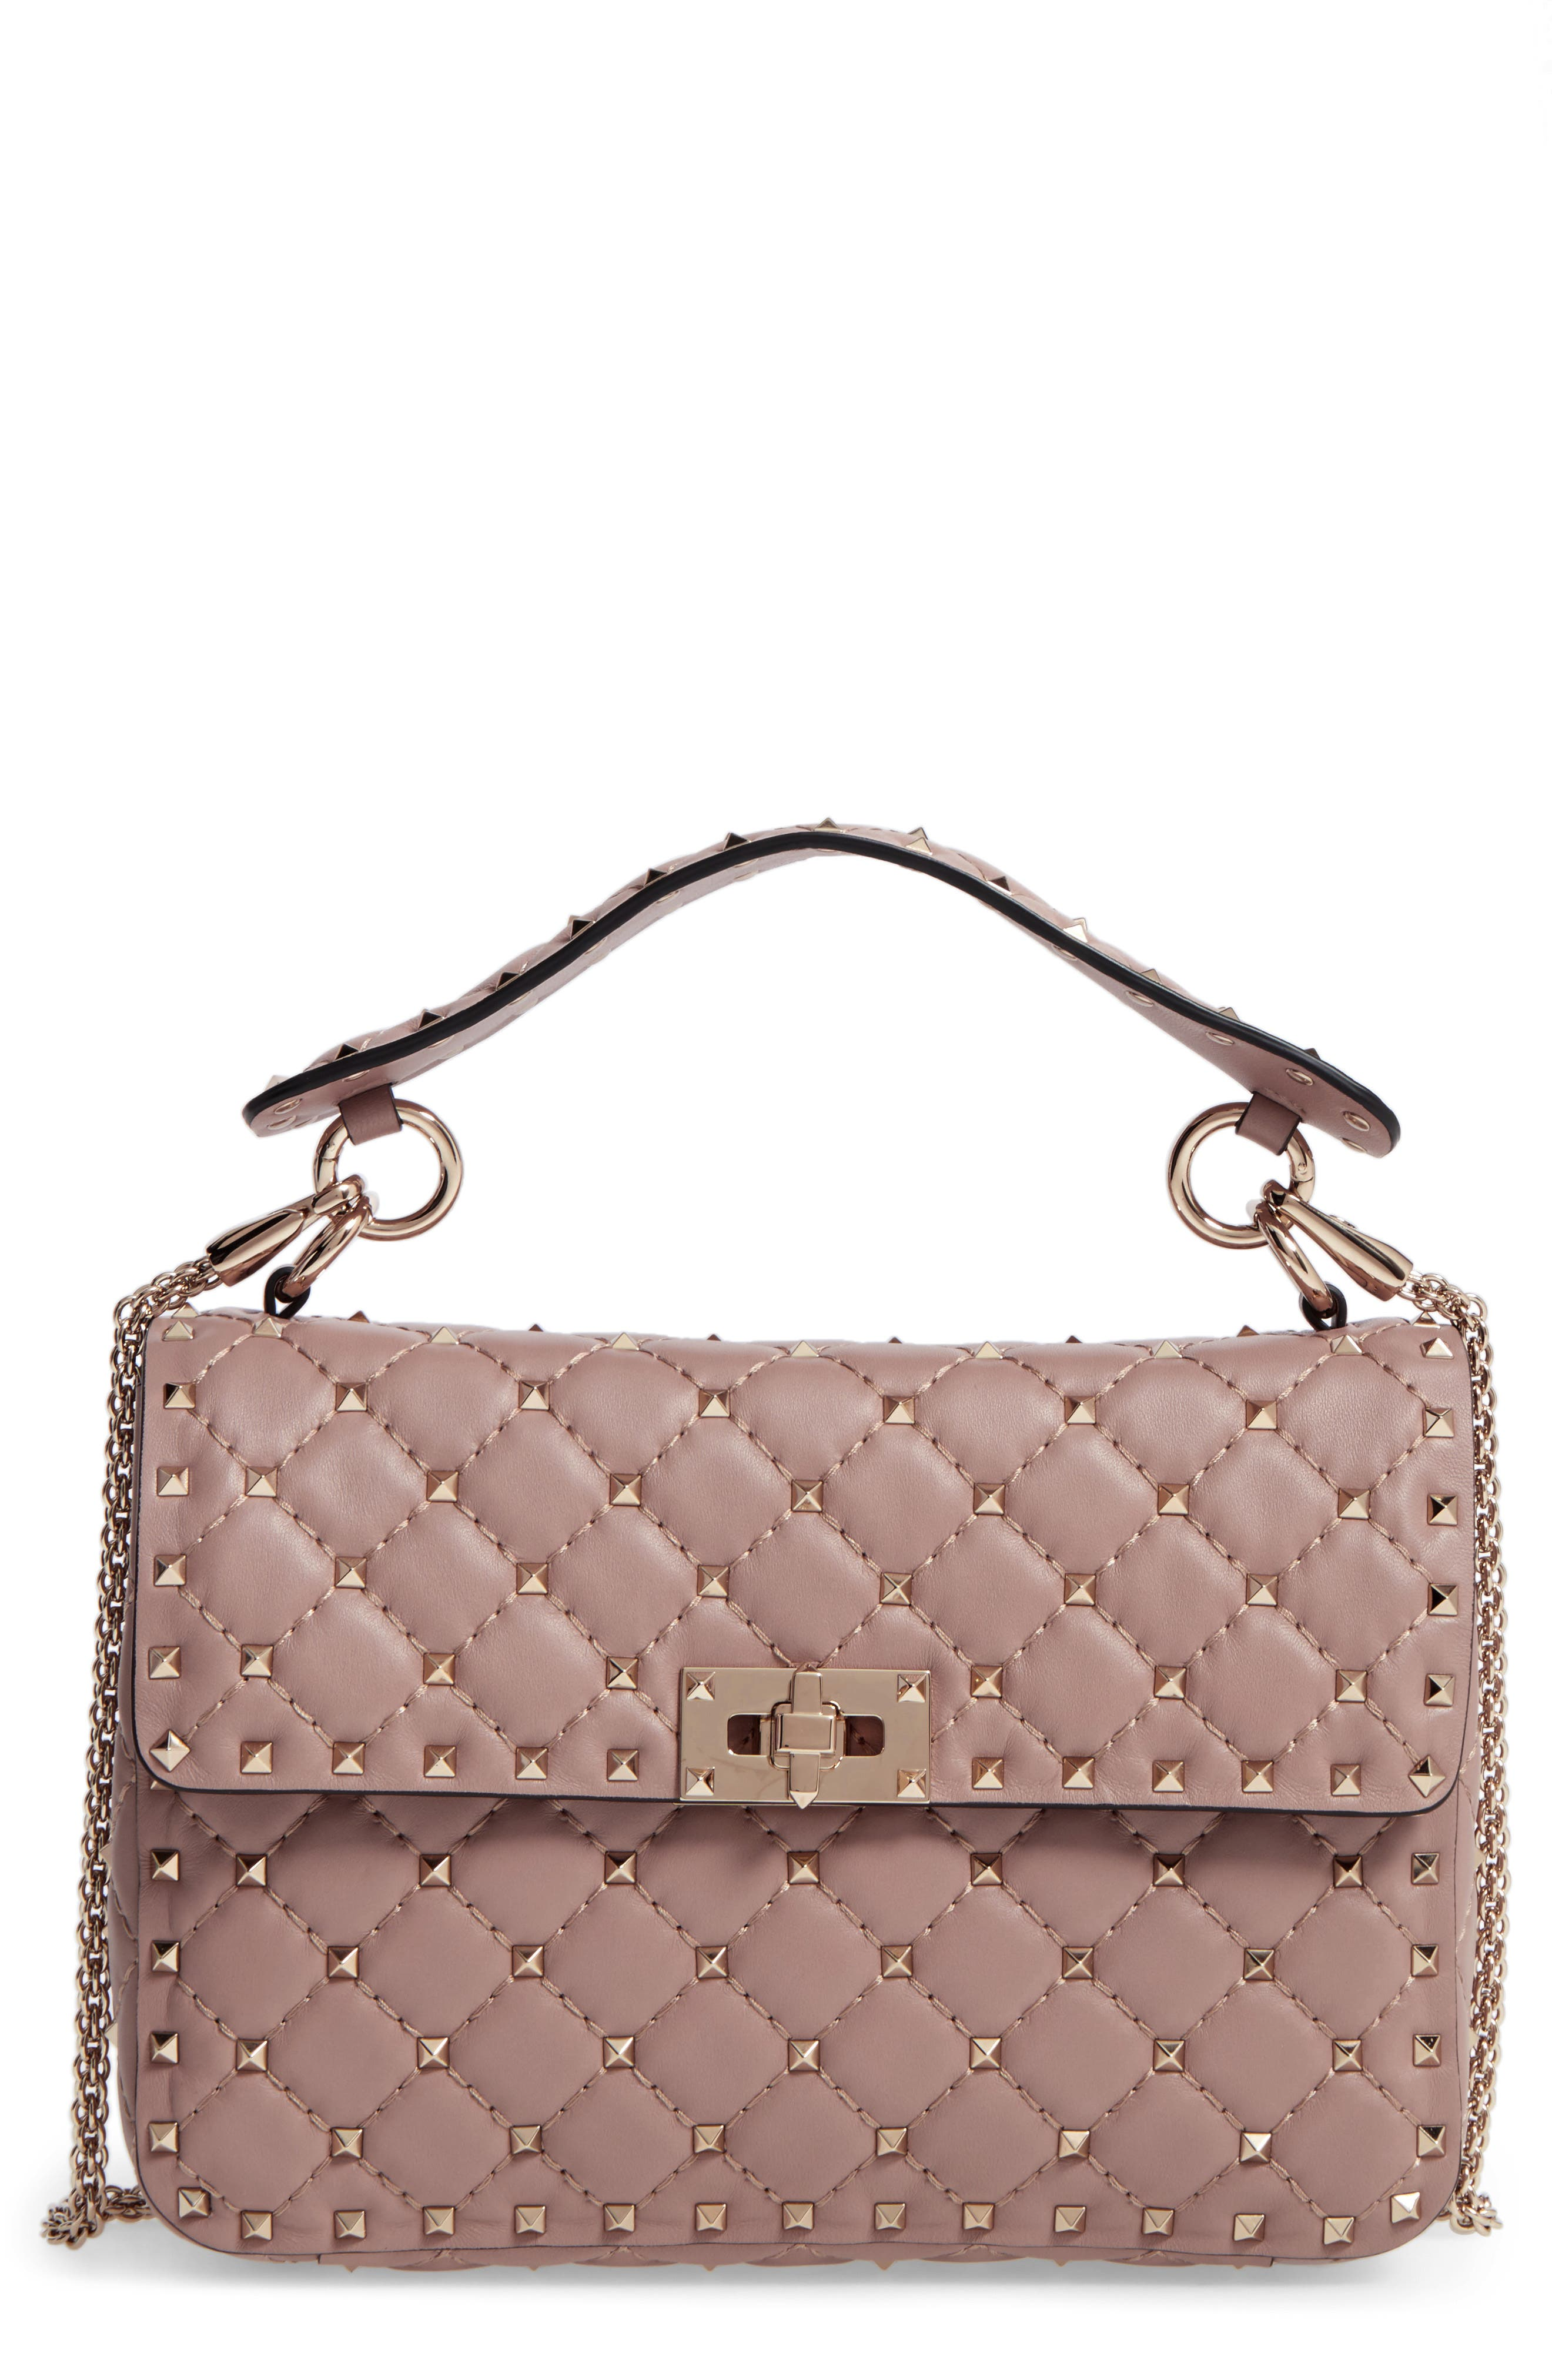 Main Image - VALENTINO GARAVANI Medium Rockstud Spike Crossbody Bag